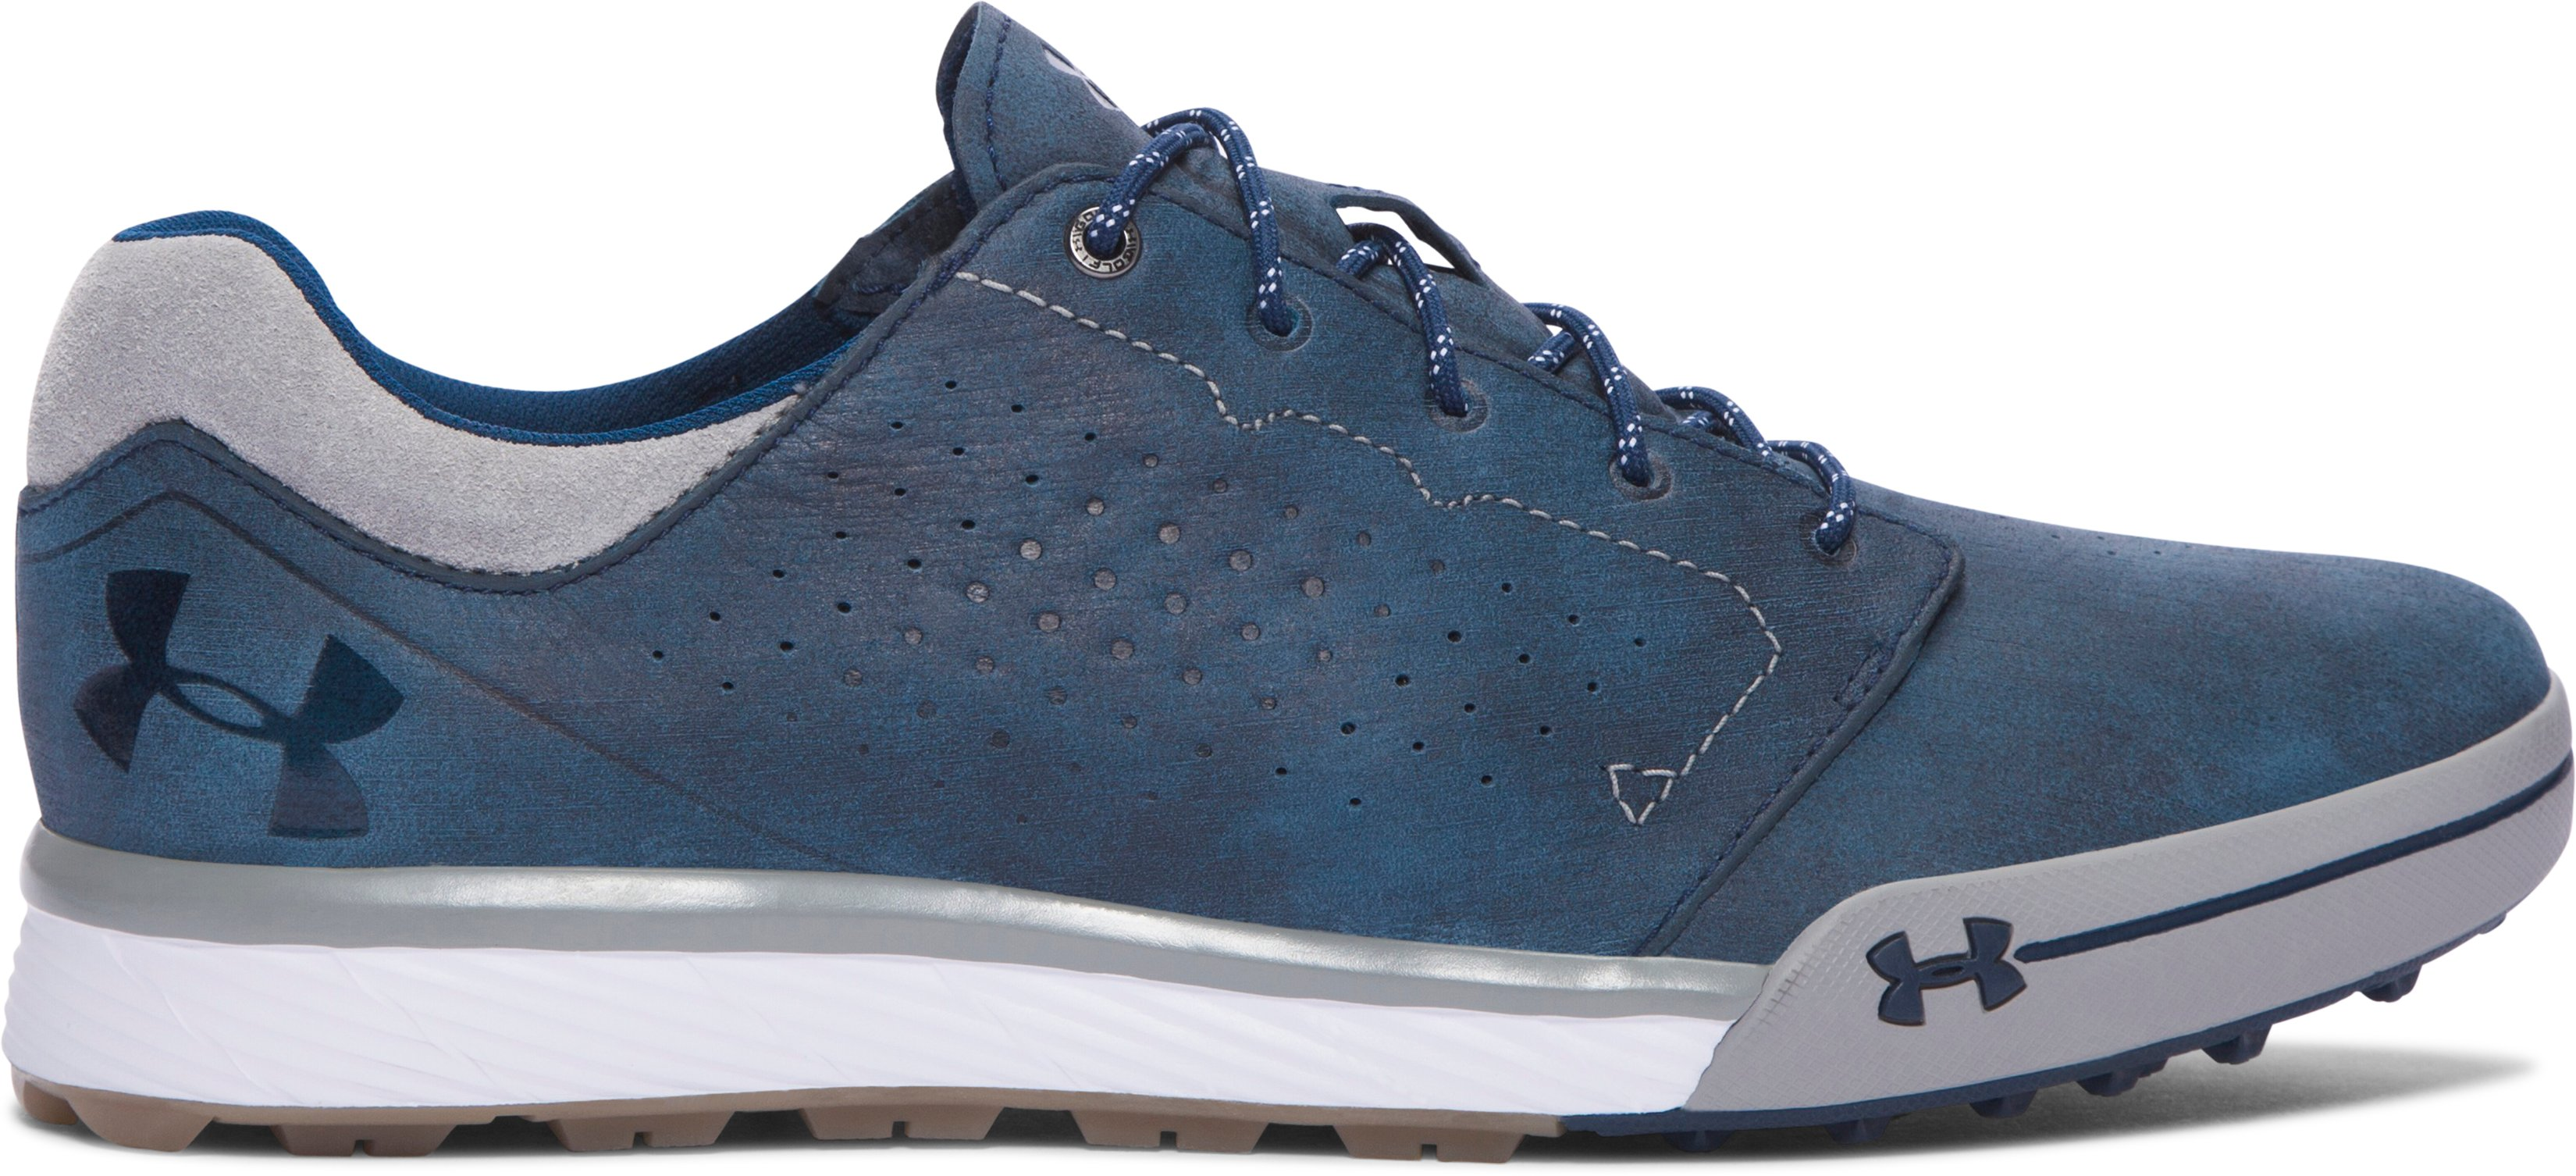 academy shoes Men's UA Tempo Hybrid Golf Shoes It has the same technology as the tempo tour just without spikes....Great Product...Overall fantastic shoe, received in less then 40 hours!